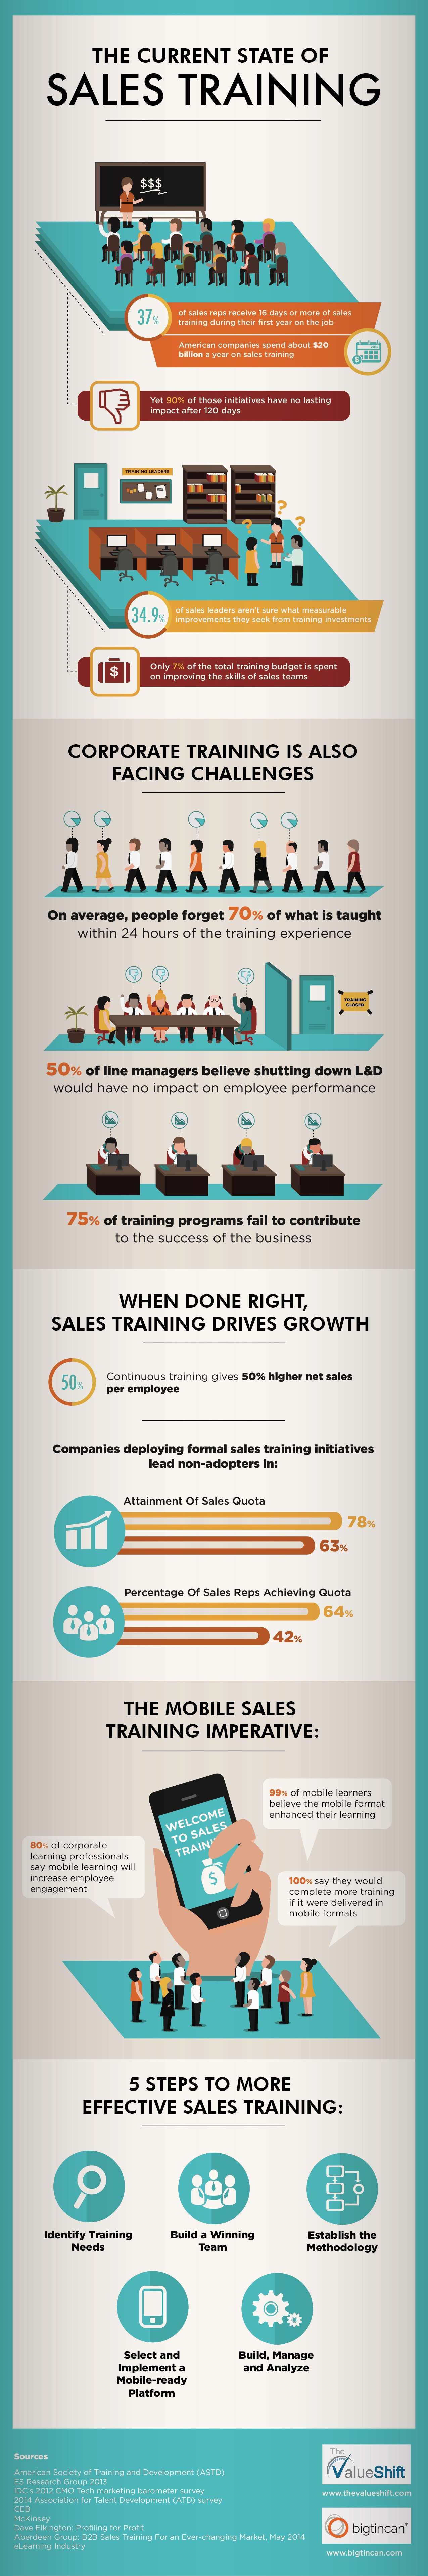 bigtincan-Infographic-State-of-Sales-Training-4-15.jpg